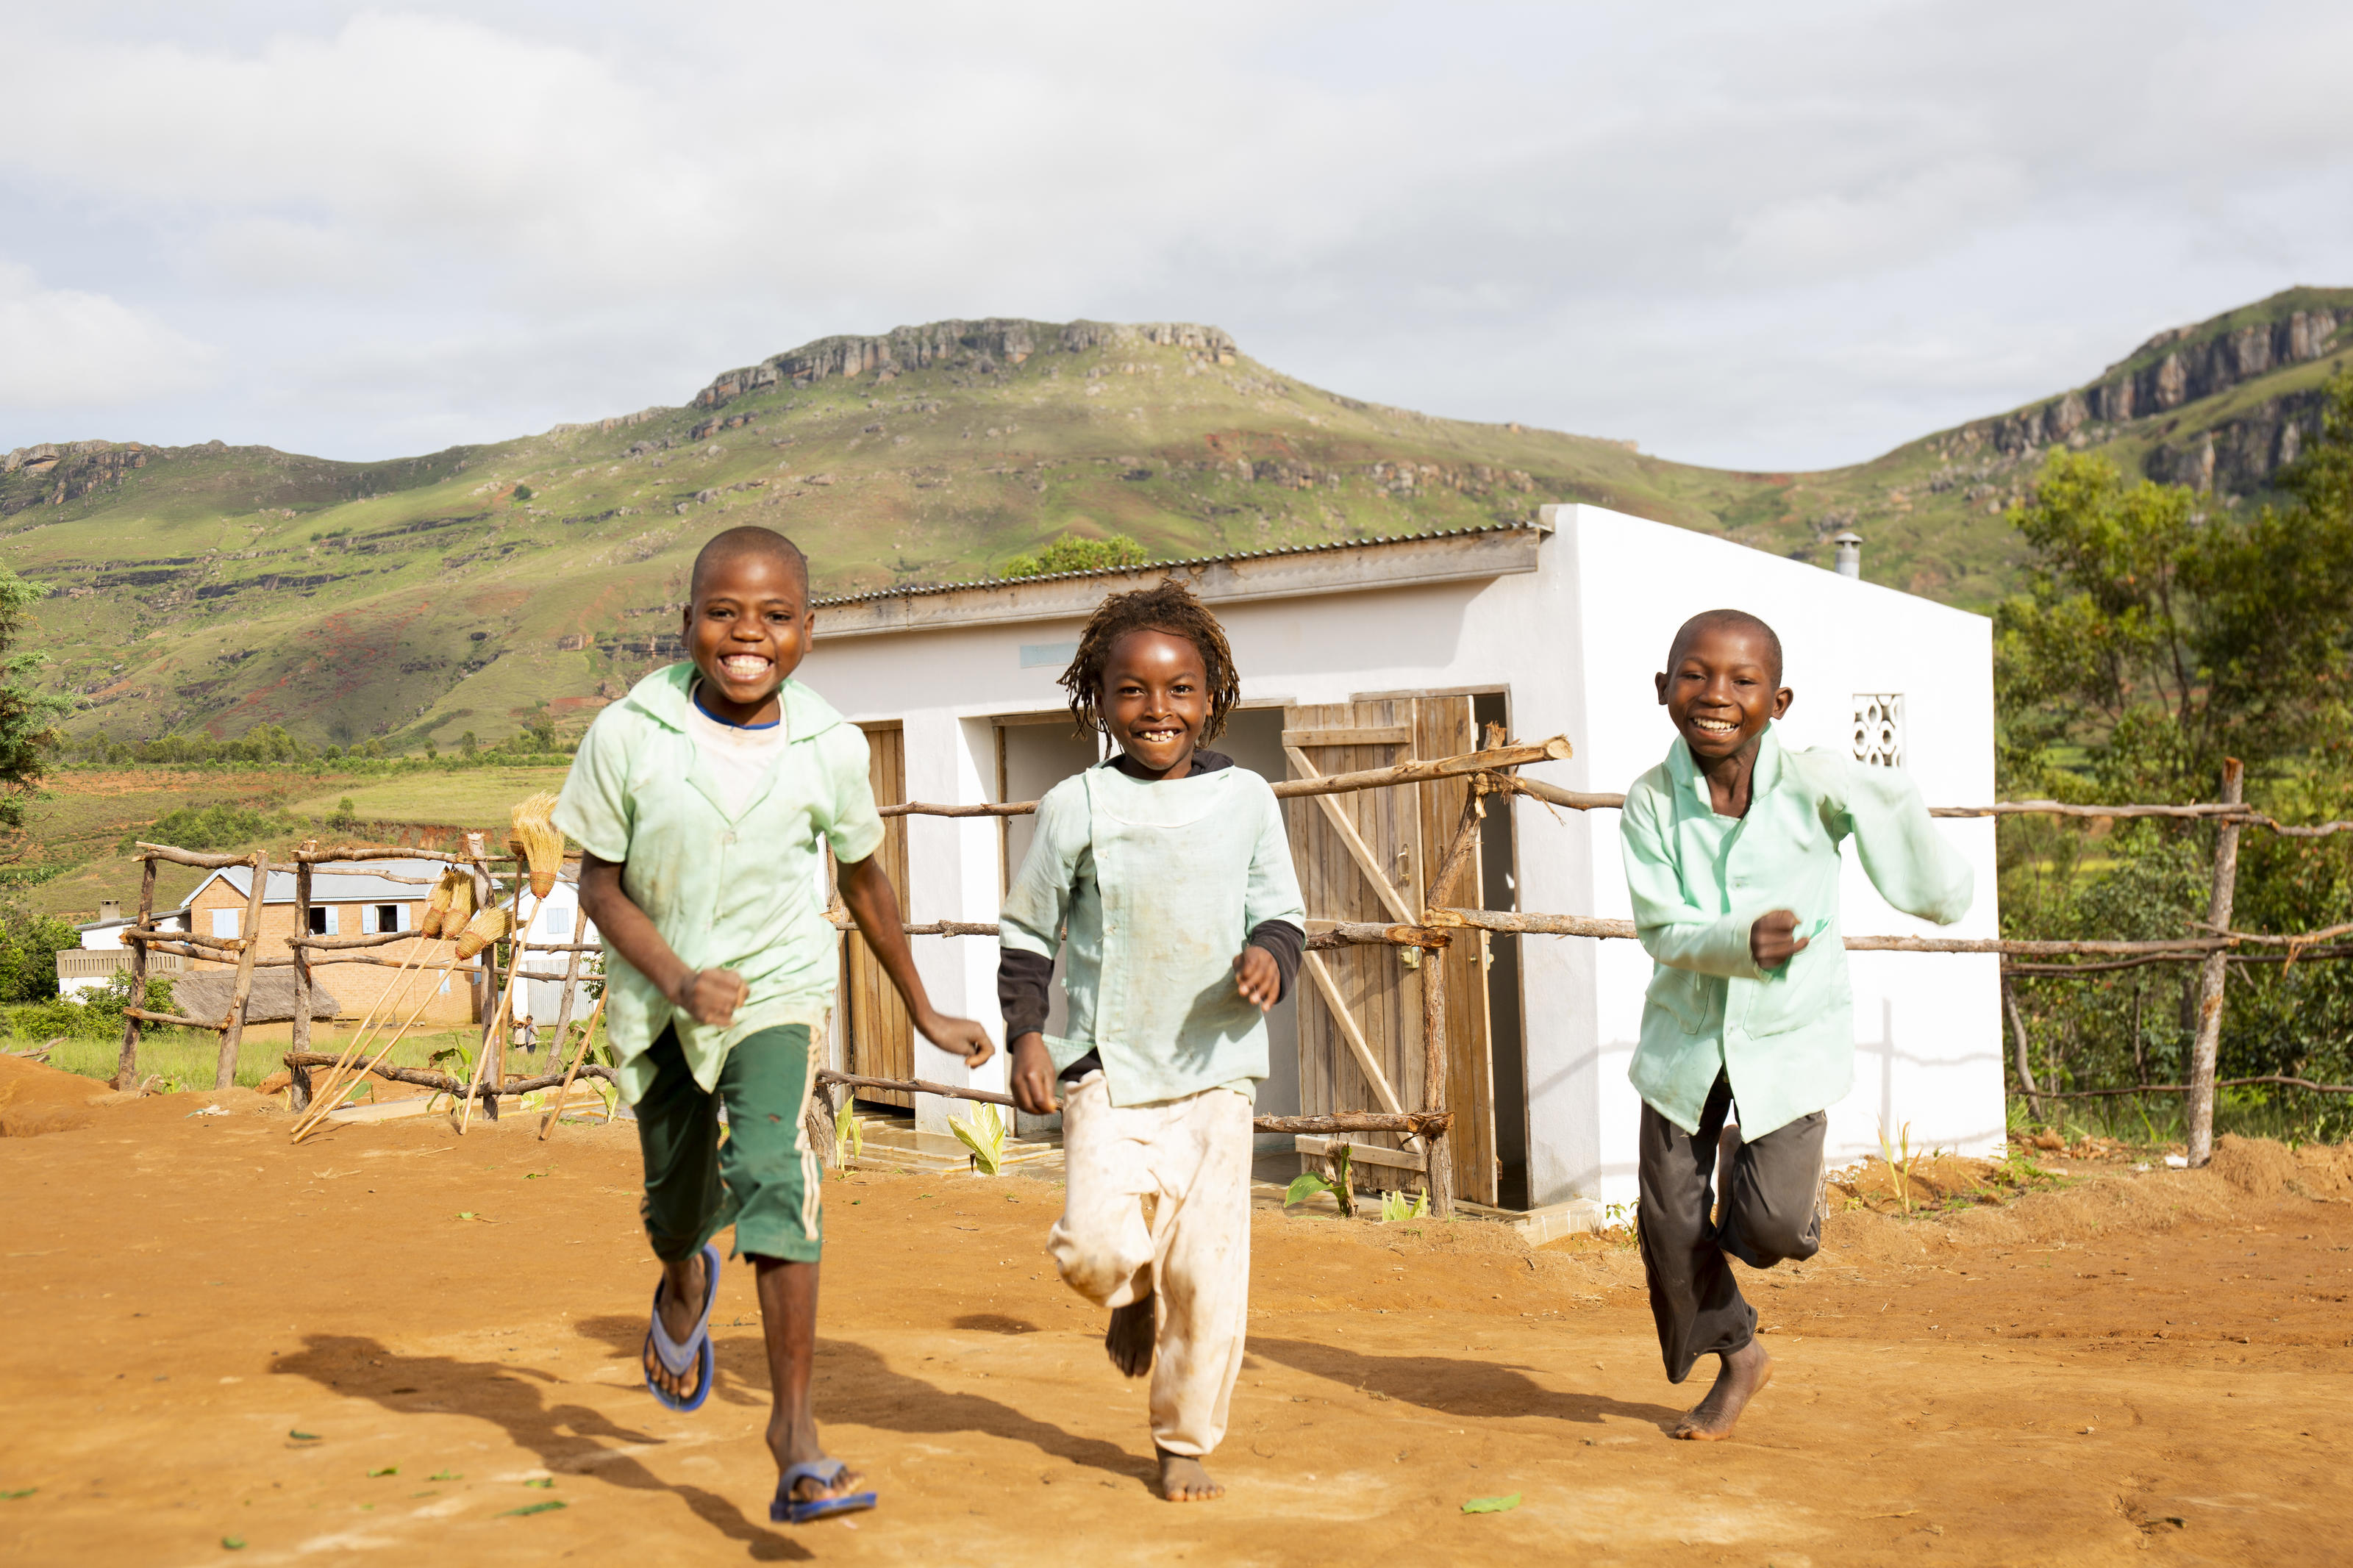 Bera, Toky and Samy running in front of their new sanitation block at their primary school in Madagascar